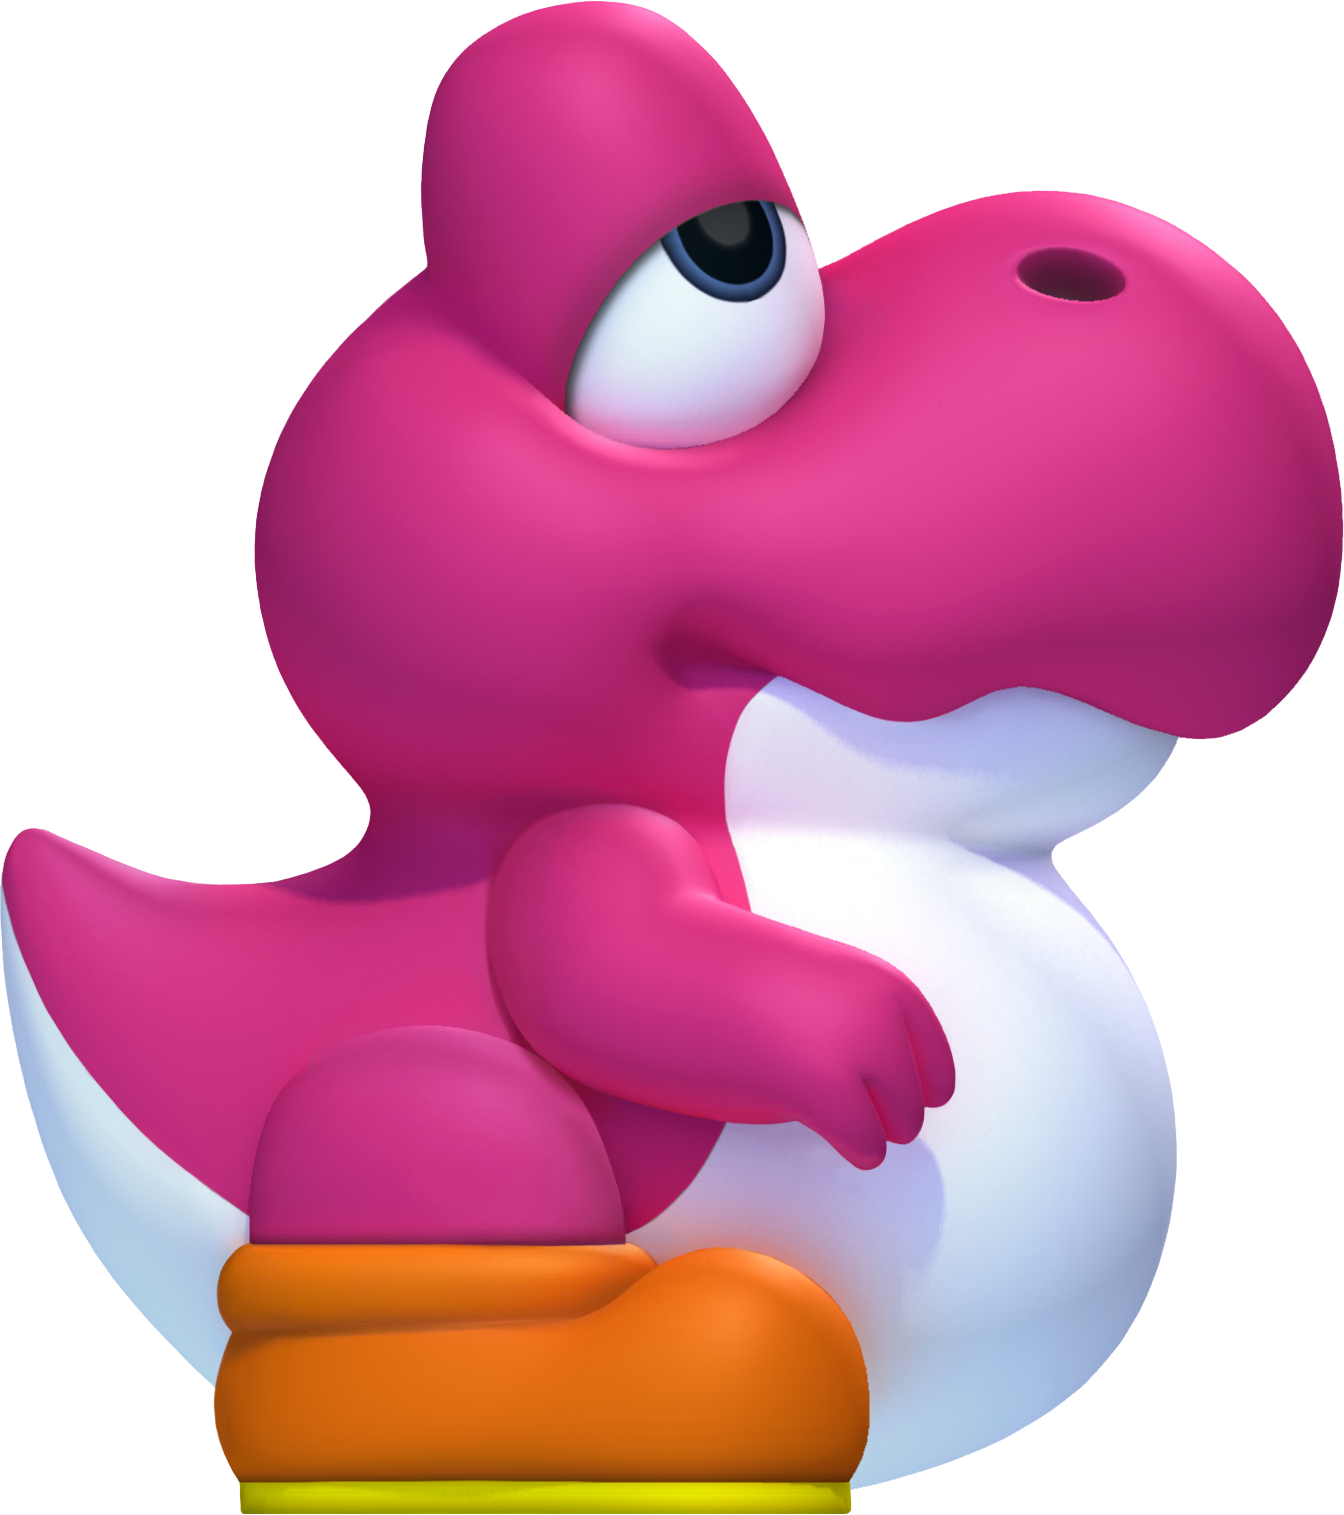 Balloon Baby Yoshi | Yoshi Wiki | FANDOM powered by Wikia